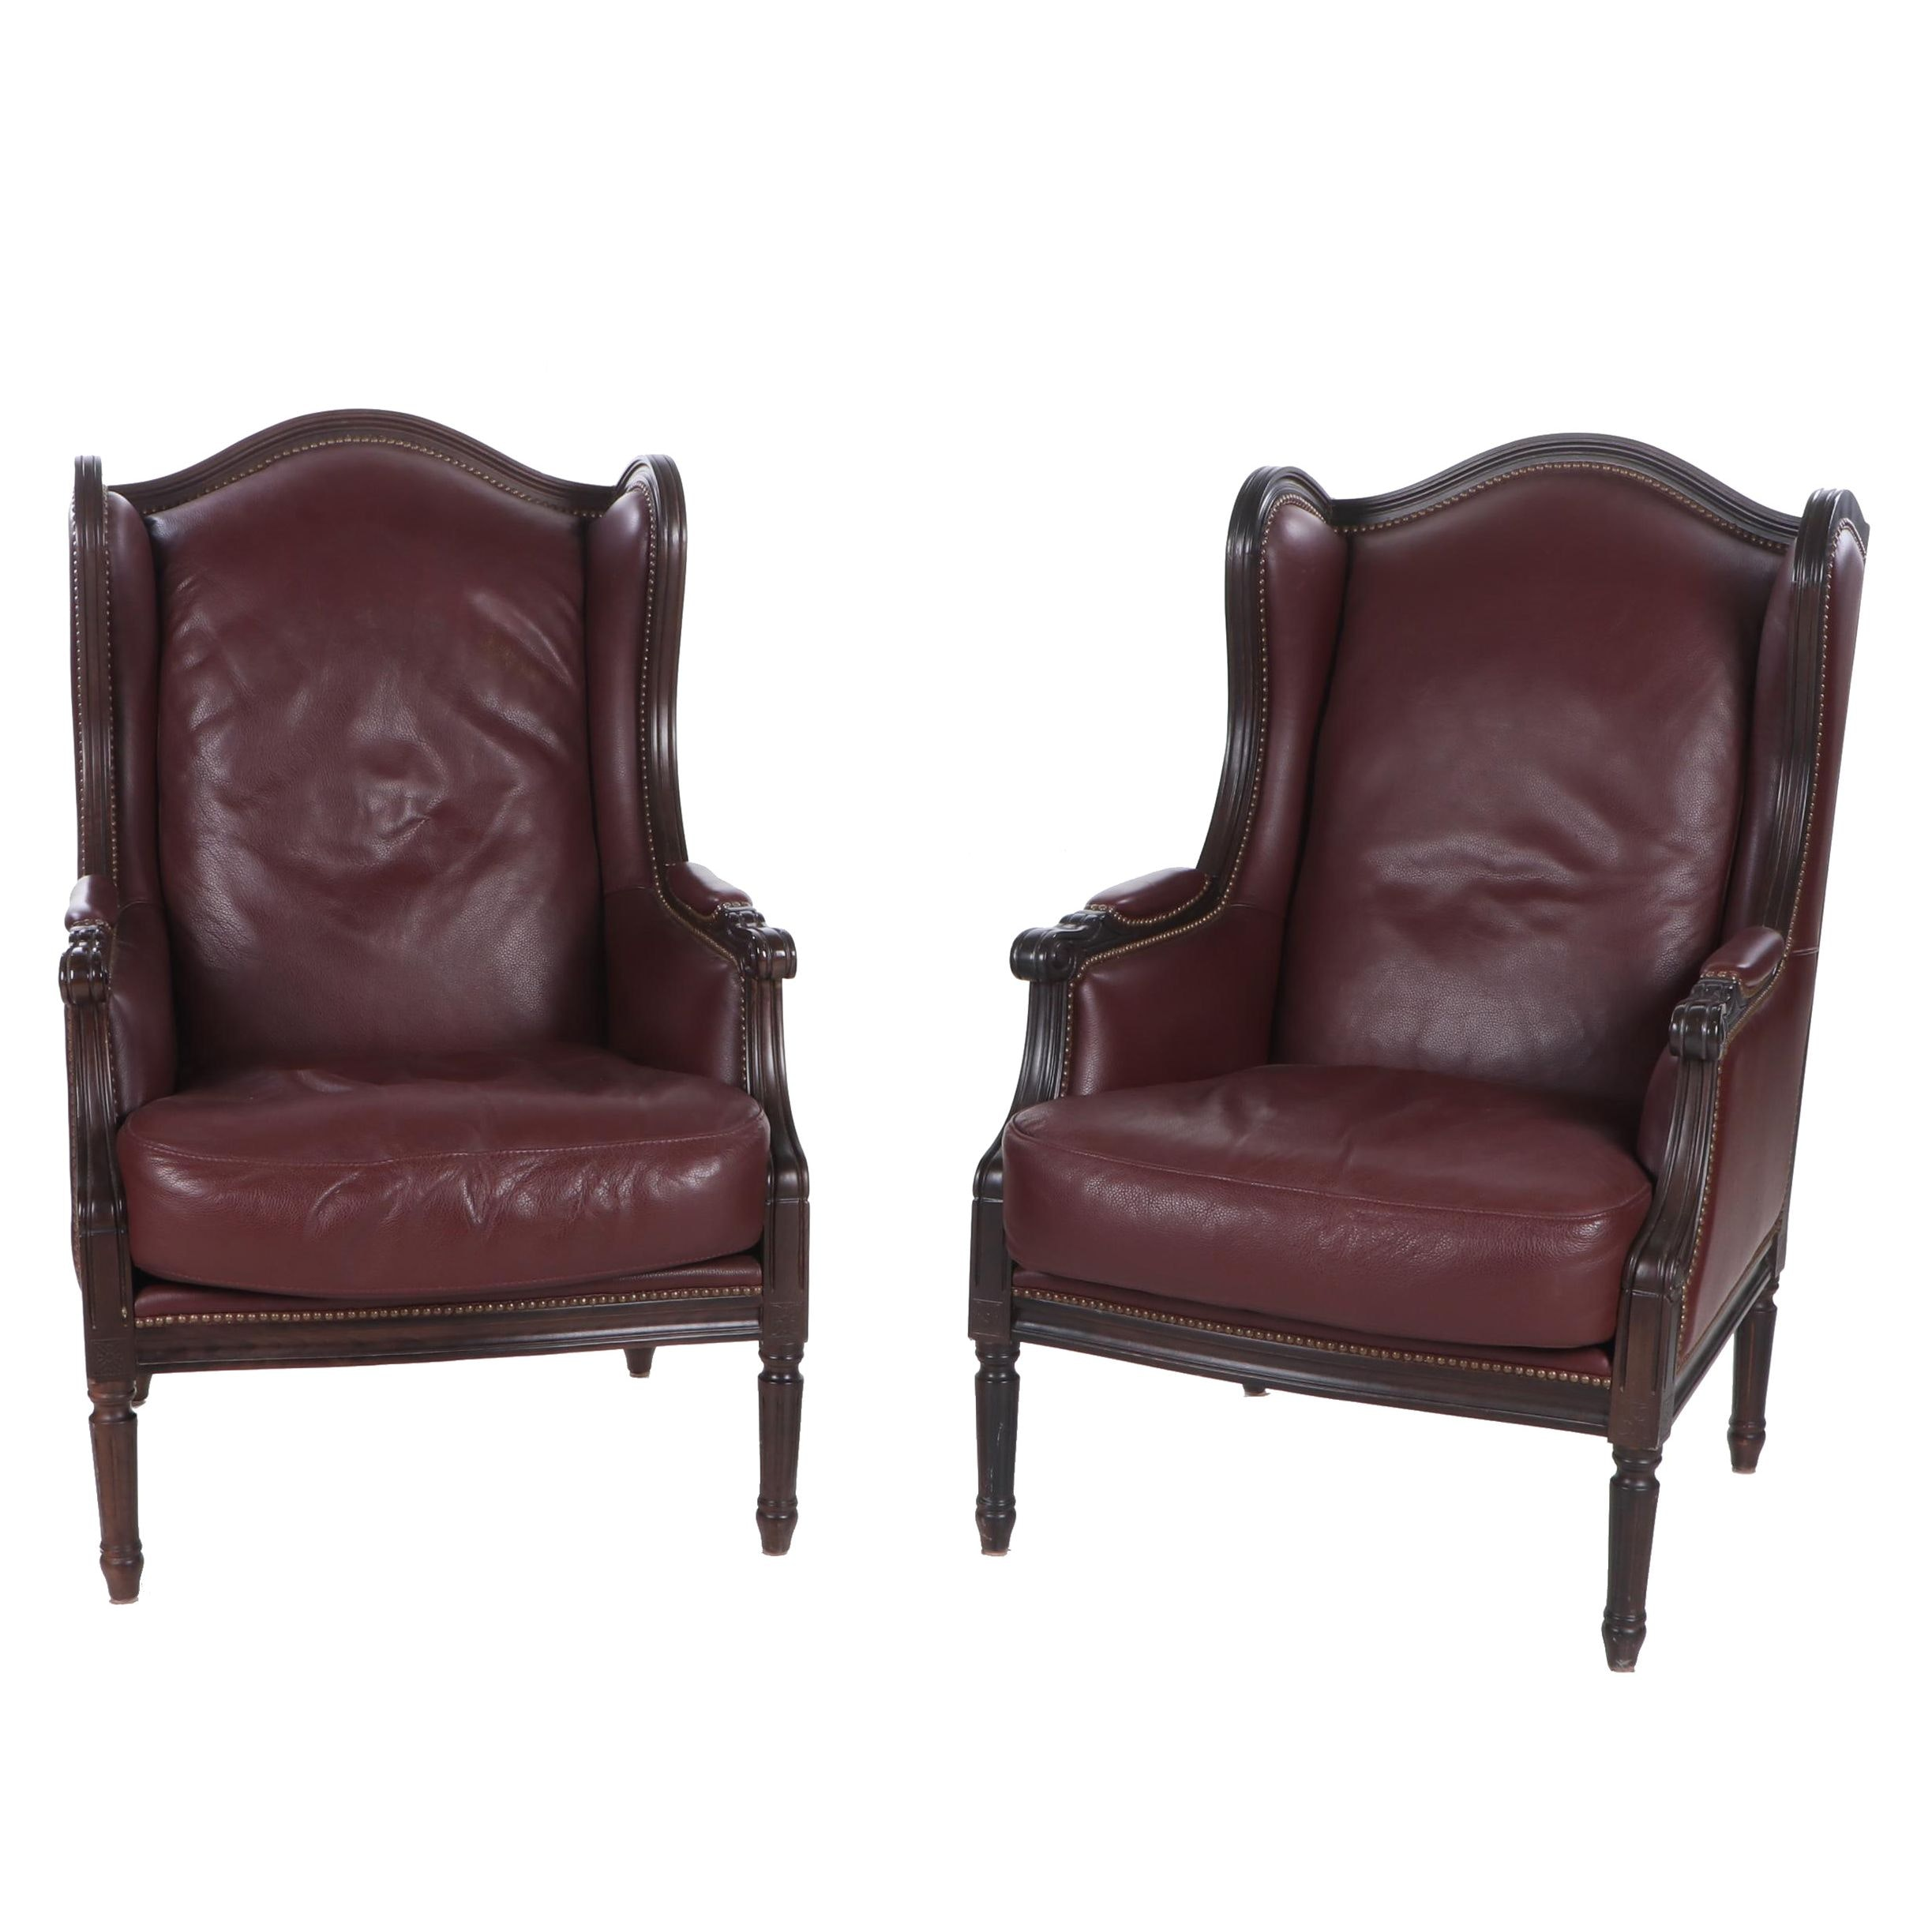 Louis XVI Inspired Synthetic Leather Wing Back Chairs, Contemporary